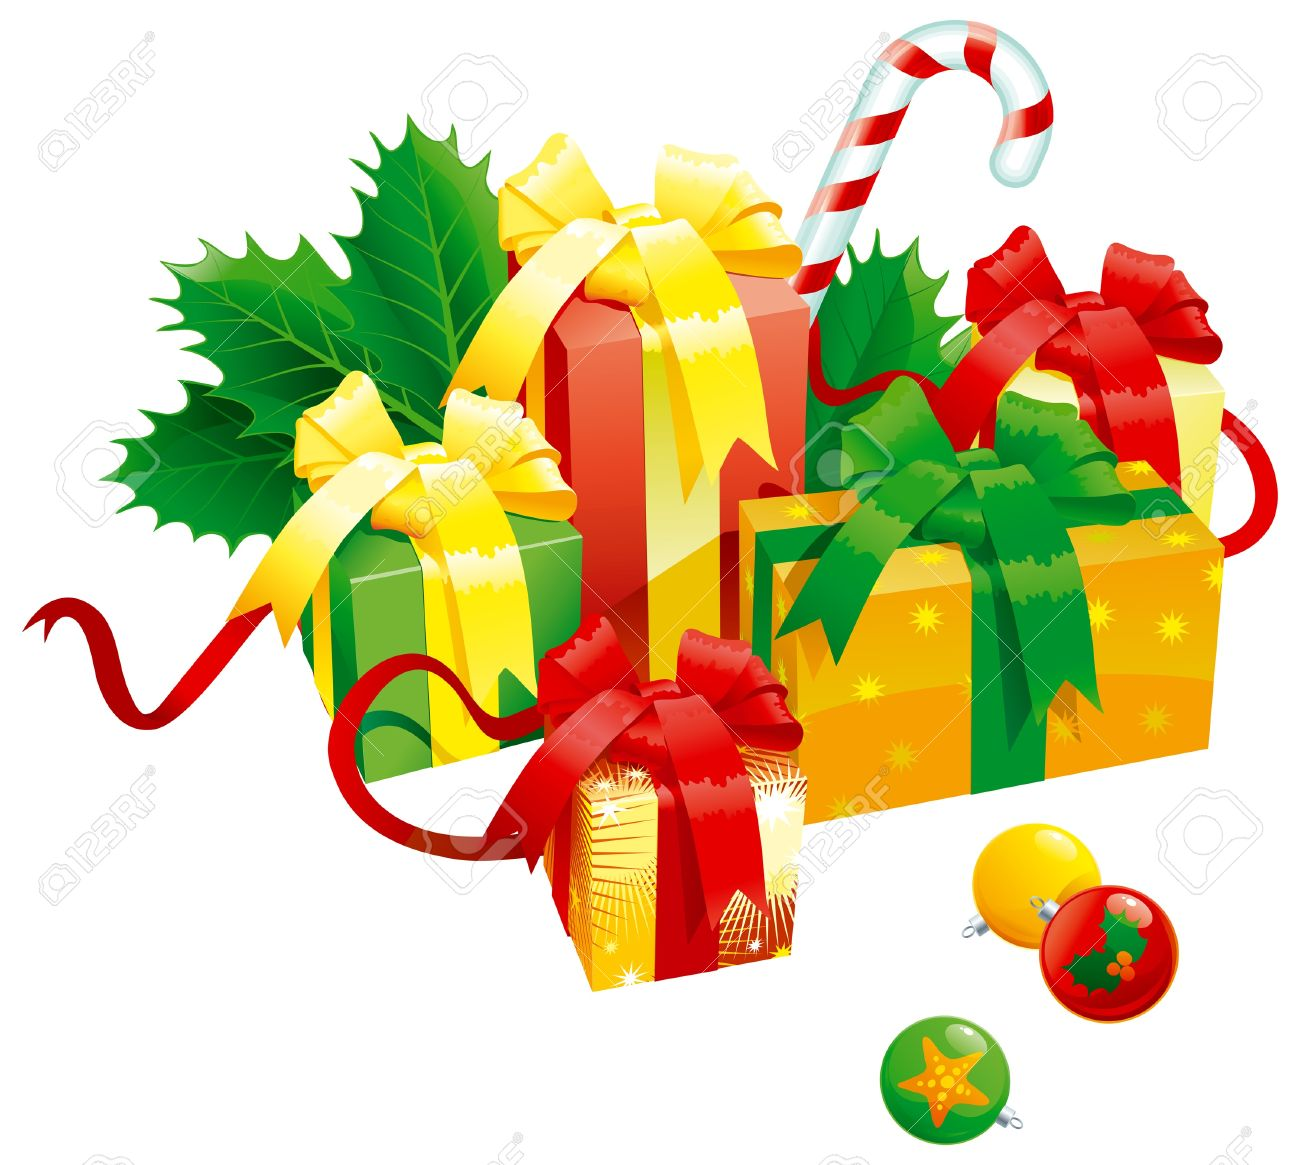 Christmas presents. Vector of christmas presents - gift boxes with bow, candy cane, baubles end holy leaves isolated on white background Stock Vector - 11561068